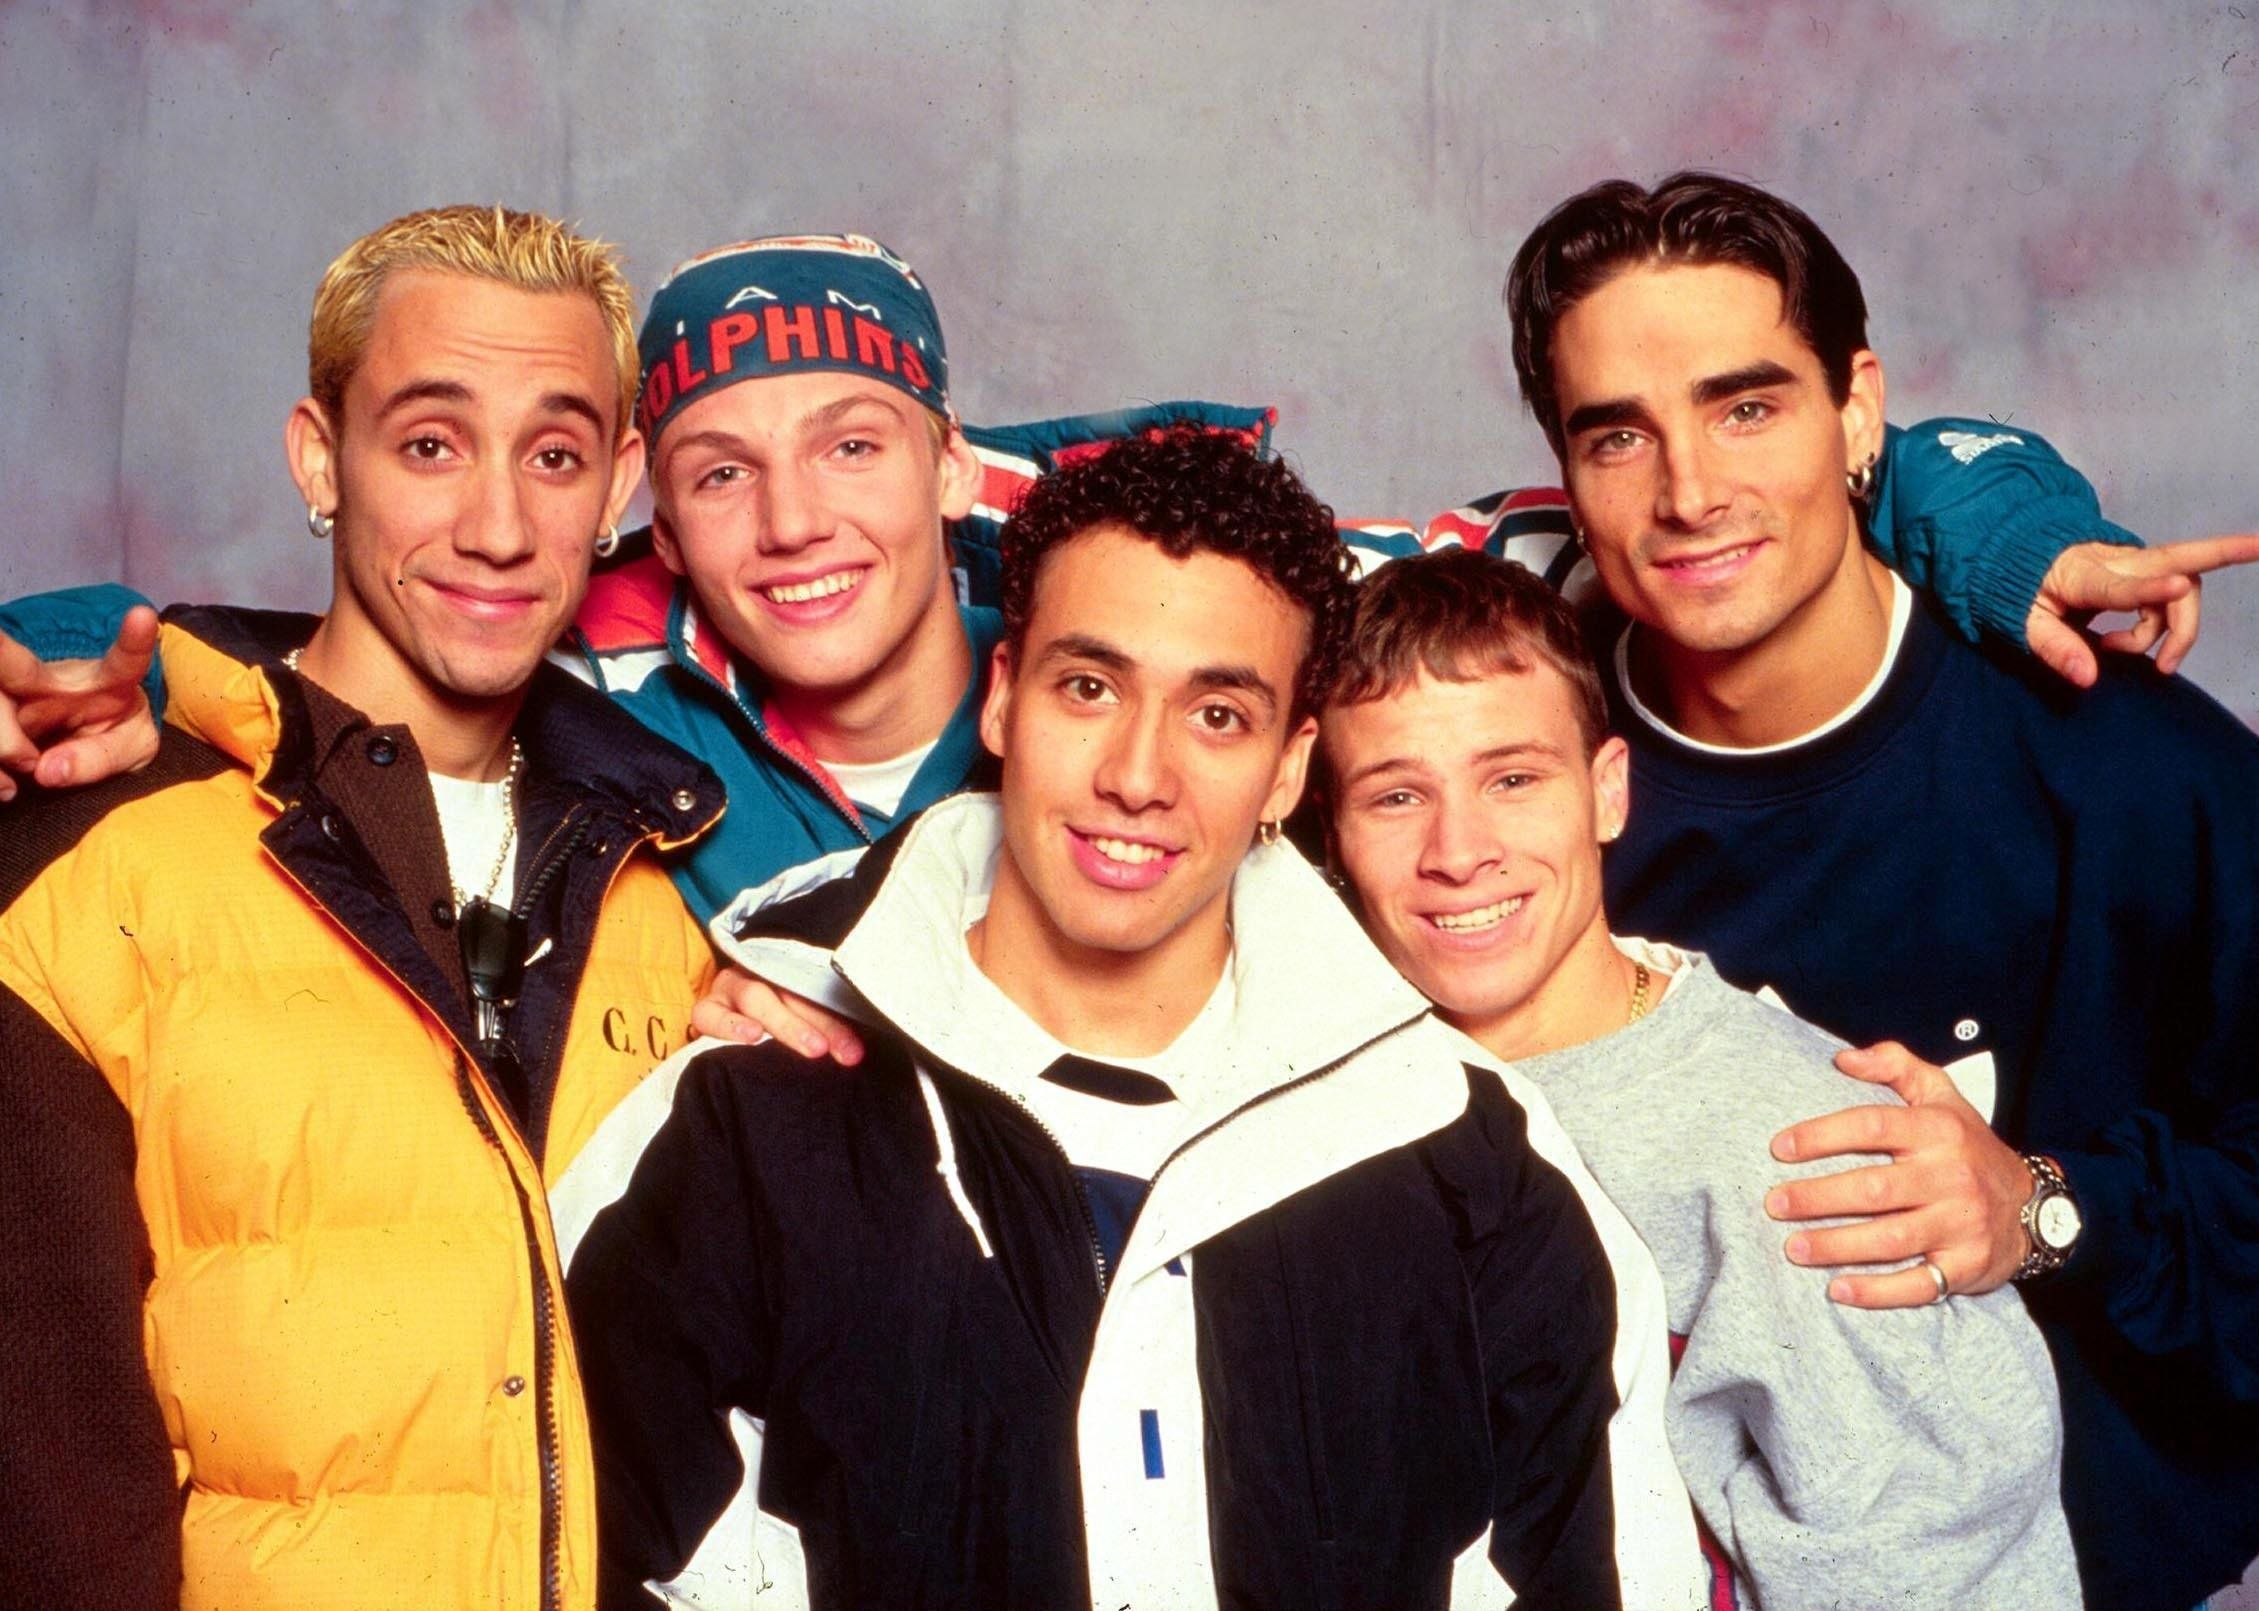 Backstreet Boys, Backstreet Boys (Photo by Brian Rasic/Getty Images)